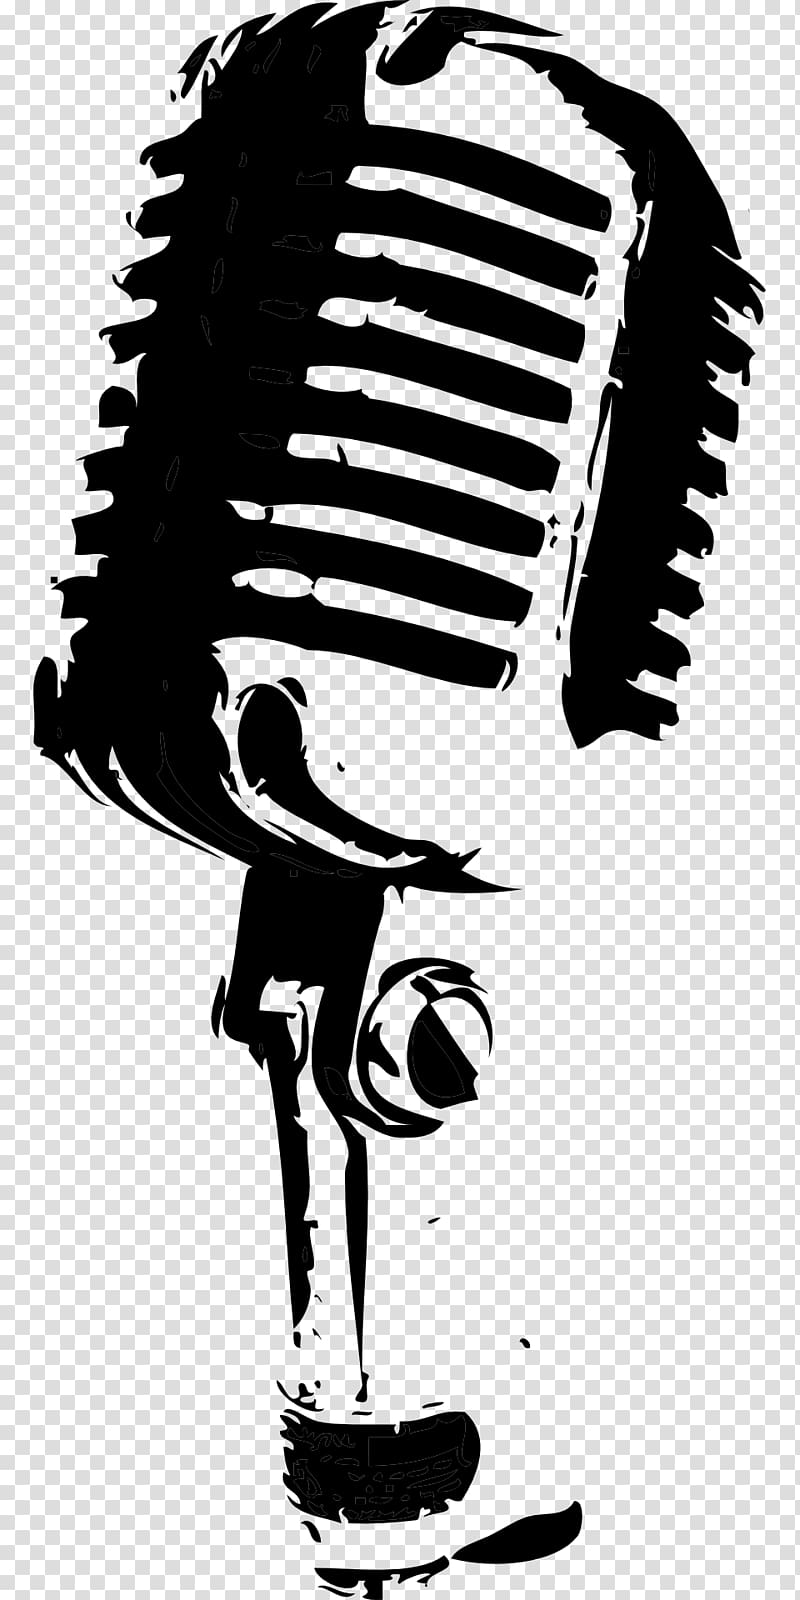 Microphone Drawing Black and white , mic transparent.